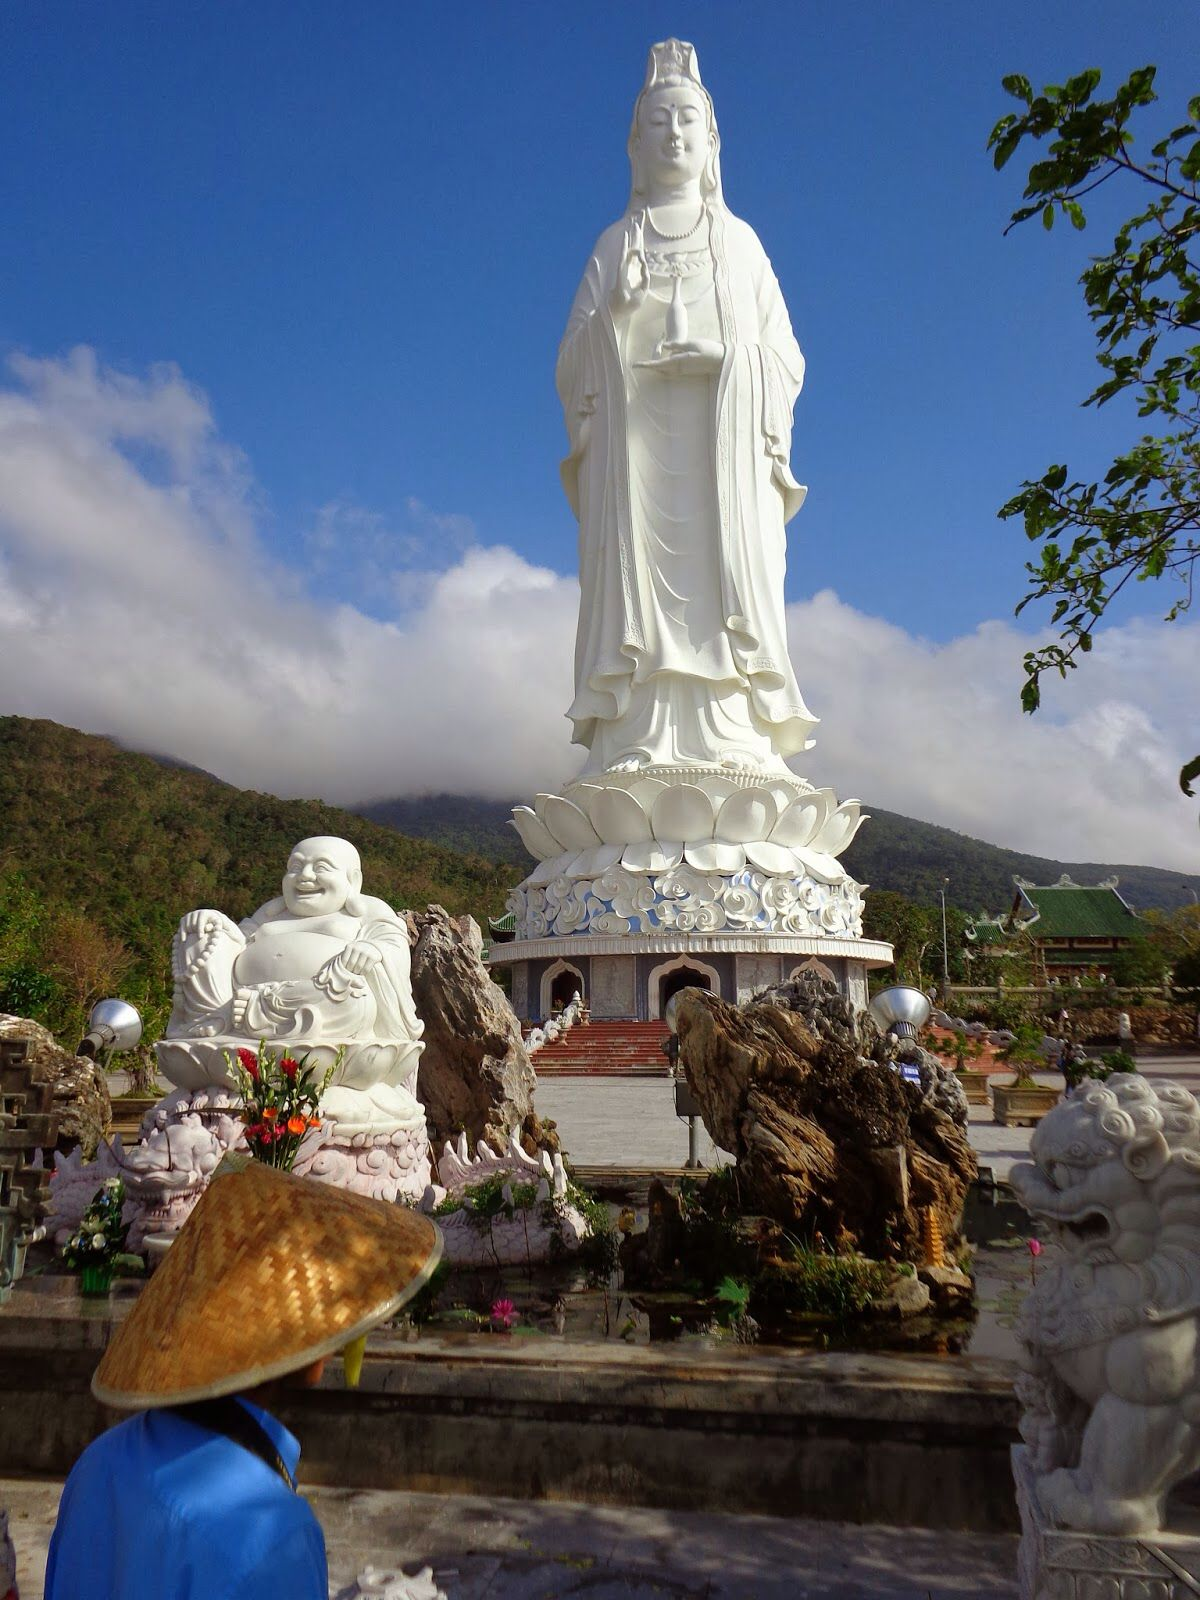 Linh Ung Bai But Pagoda And The 67 Meter High Statue Of